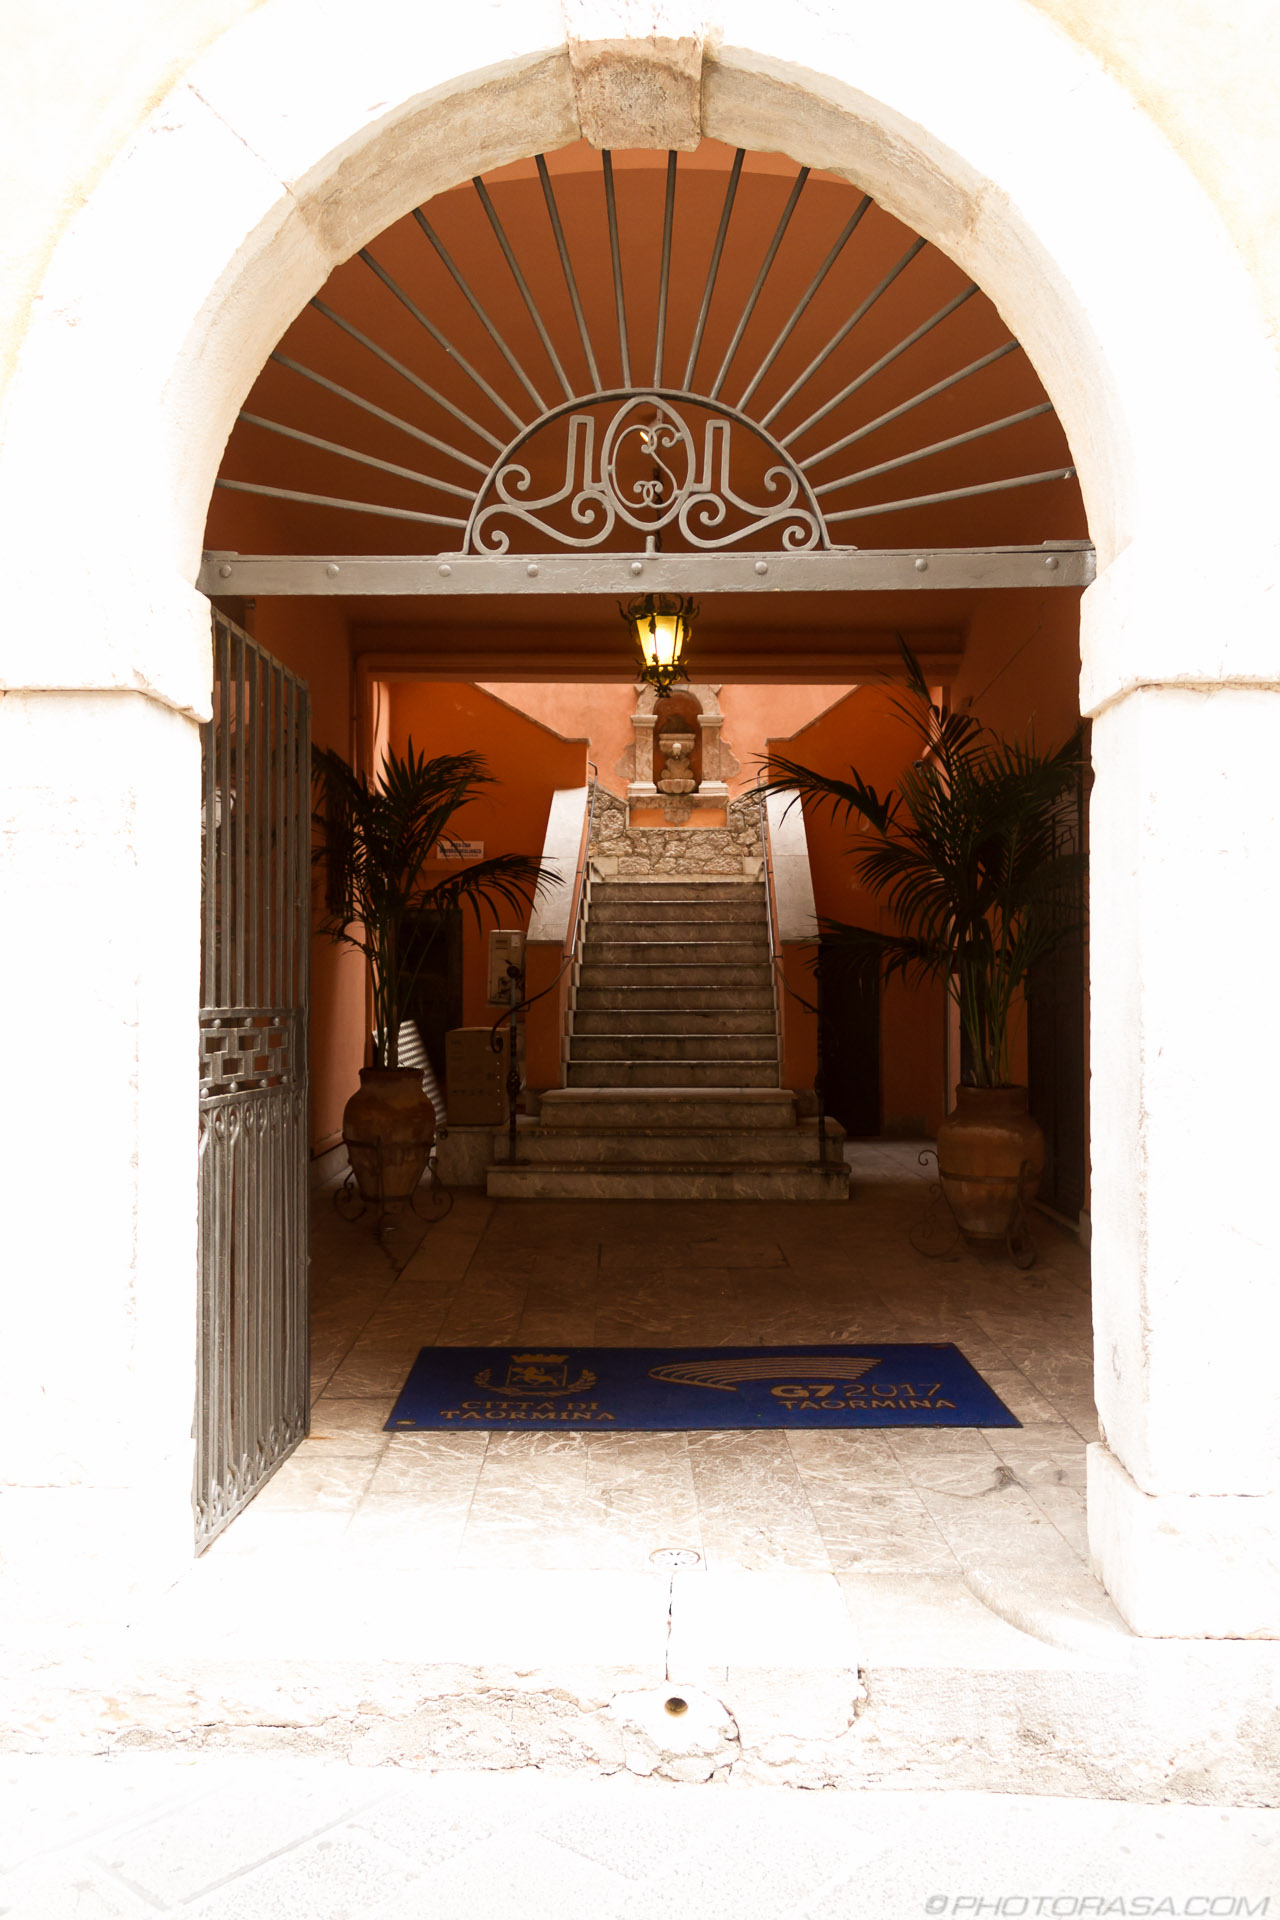 https://photorasa.com/taormina/building-entrance/